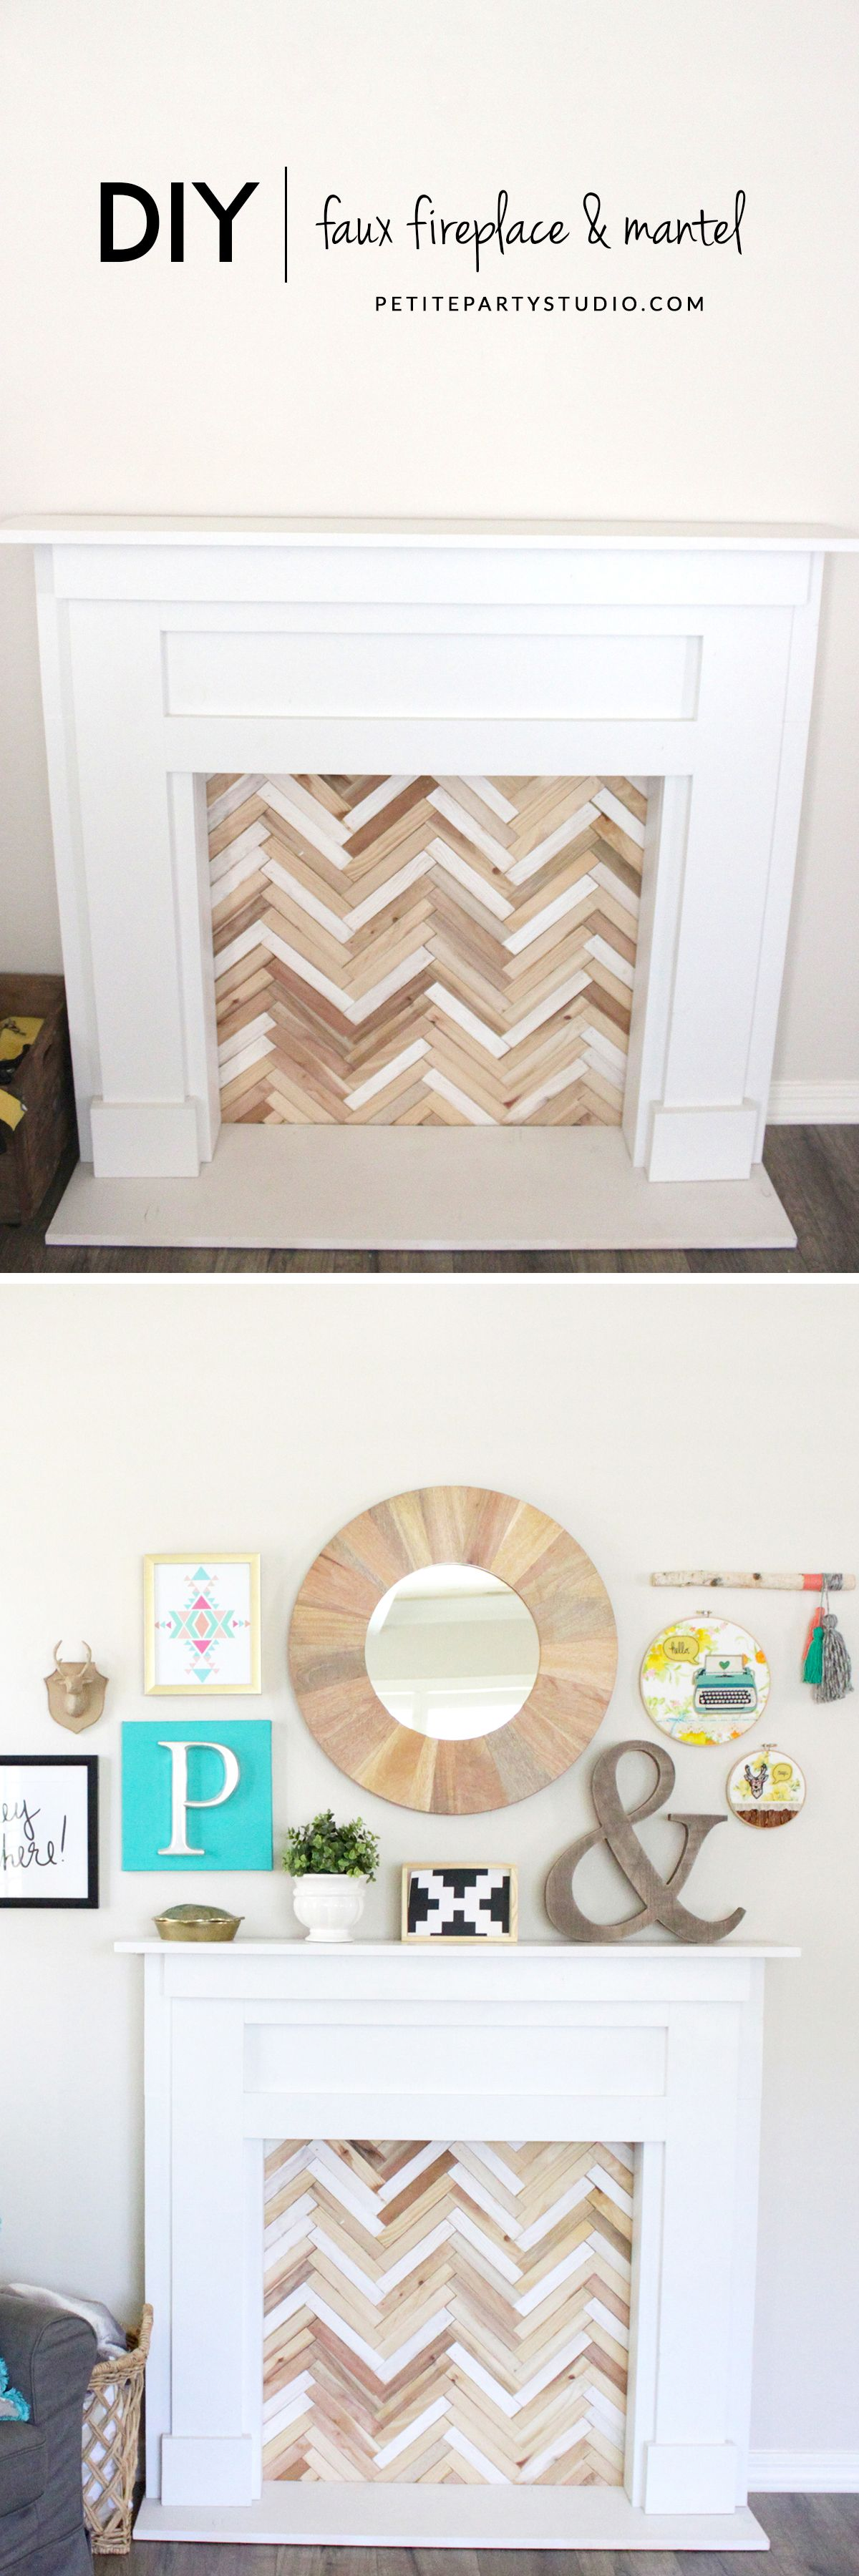 Diy faux fireplace u mantel faux fireplace mantels faux fireplace